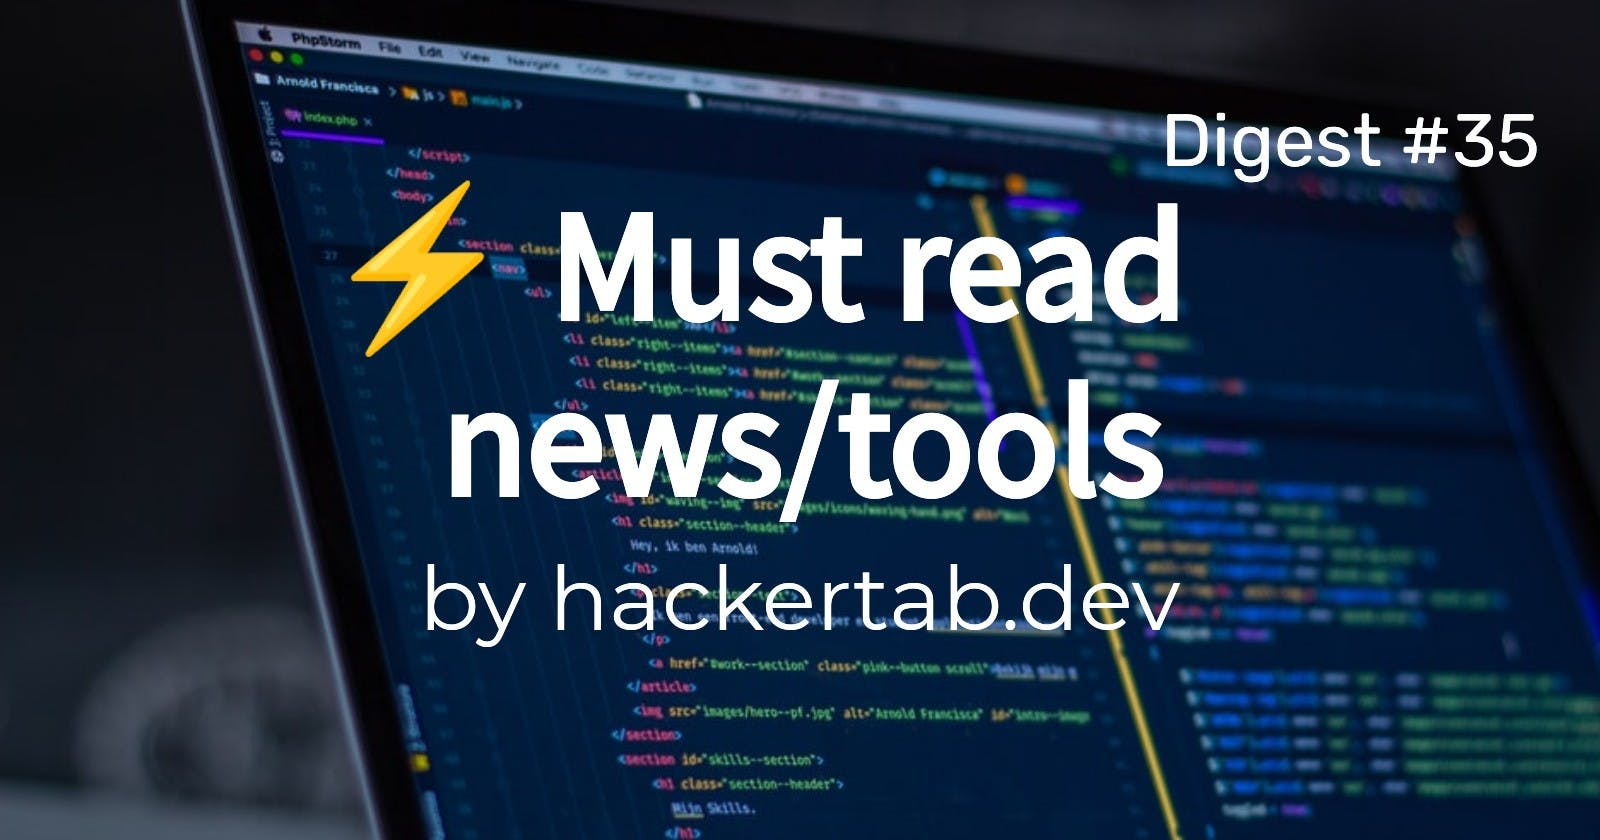 🔥 Trending News, Repos and Products of the day - Digest #35